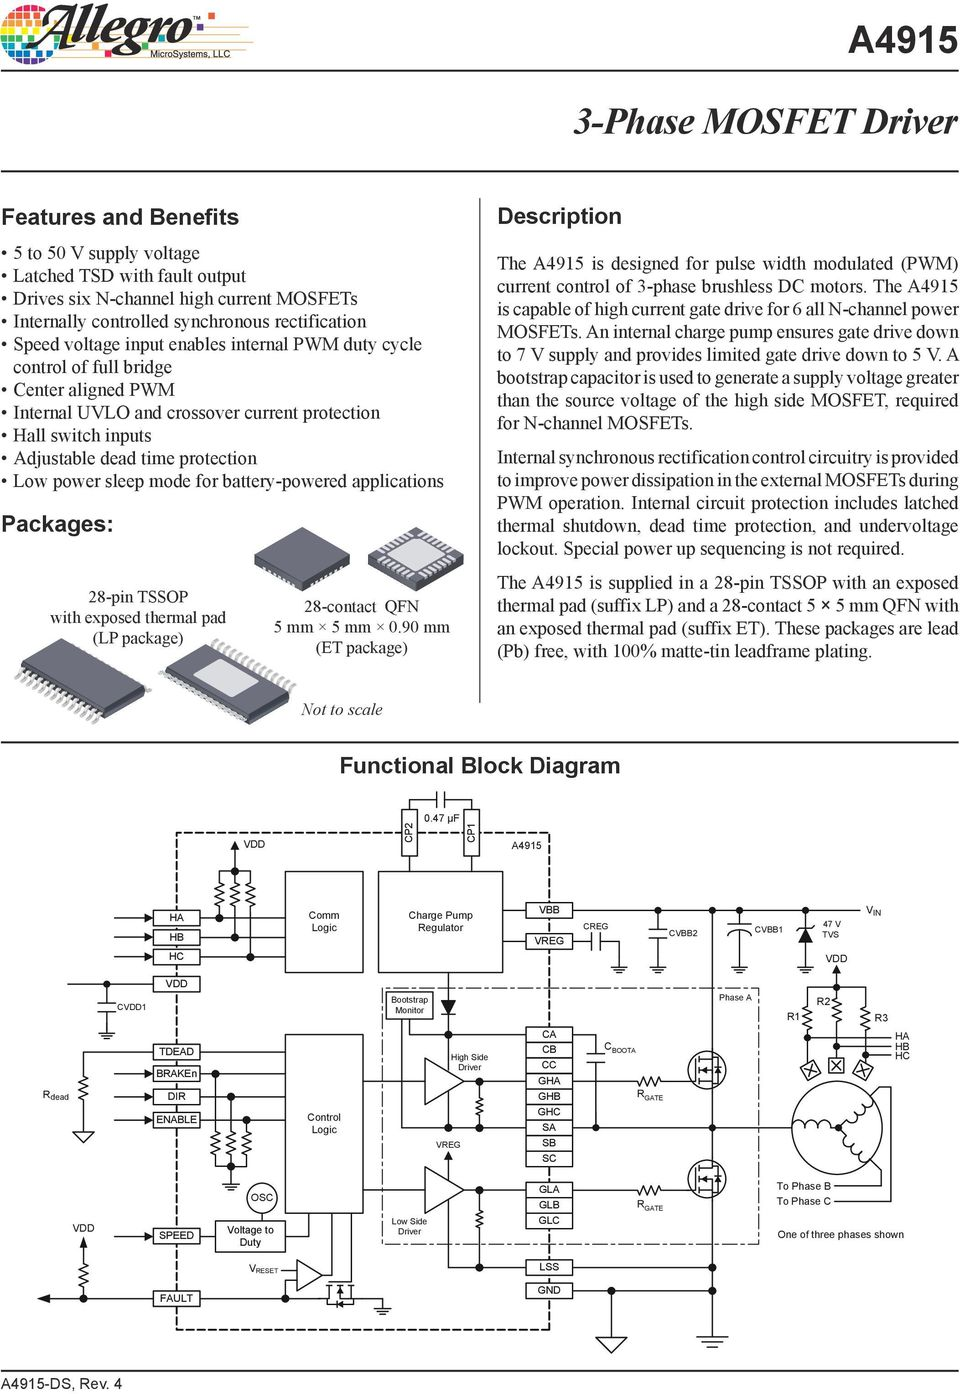 Description Functional Block Diagram A4915 Vbb Charge Pump Brushless Dc Motor Driver Battery Powered Applications Packages The Is Designed For Pulse Width Modulated